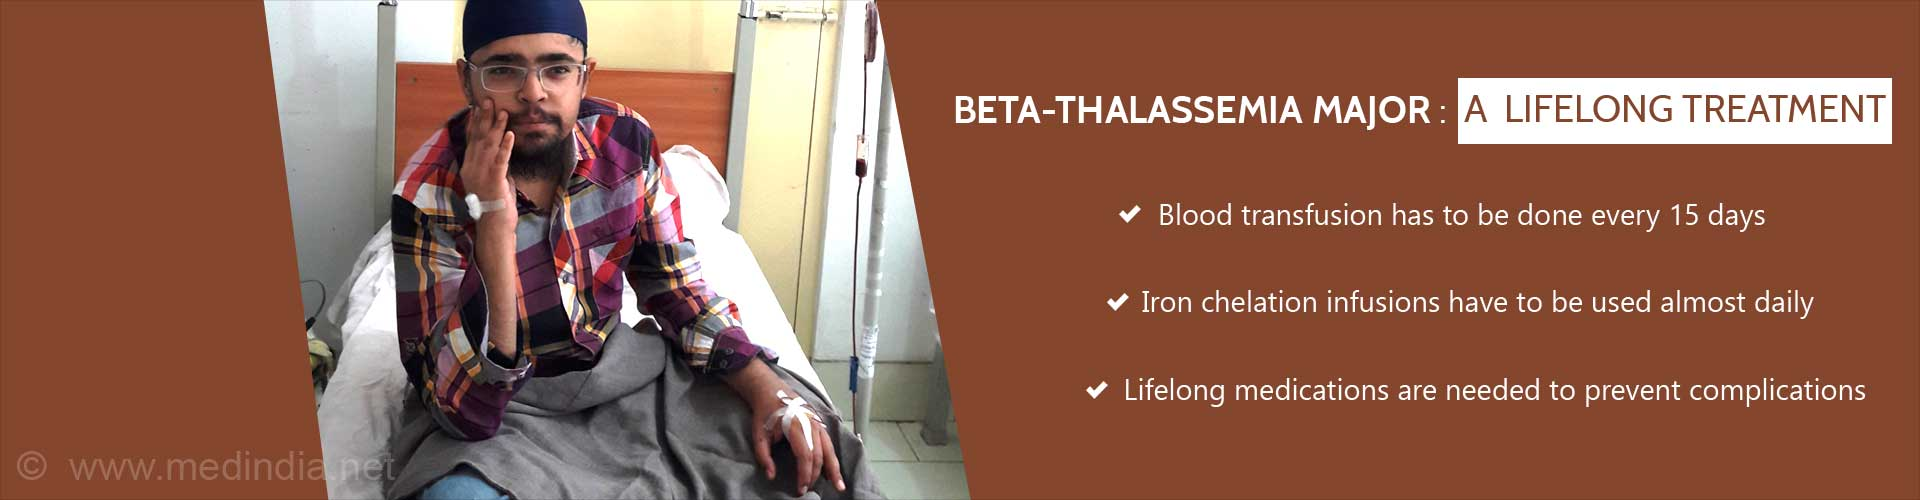 BETA-THALASSEMIA MAJOR: A Lifelong Treatment